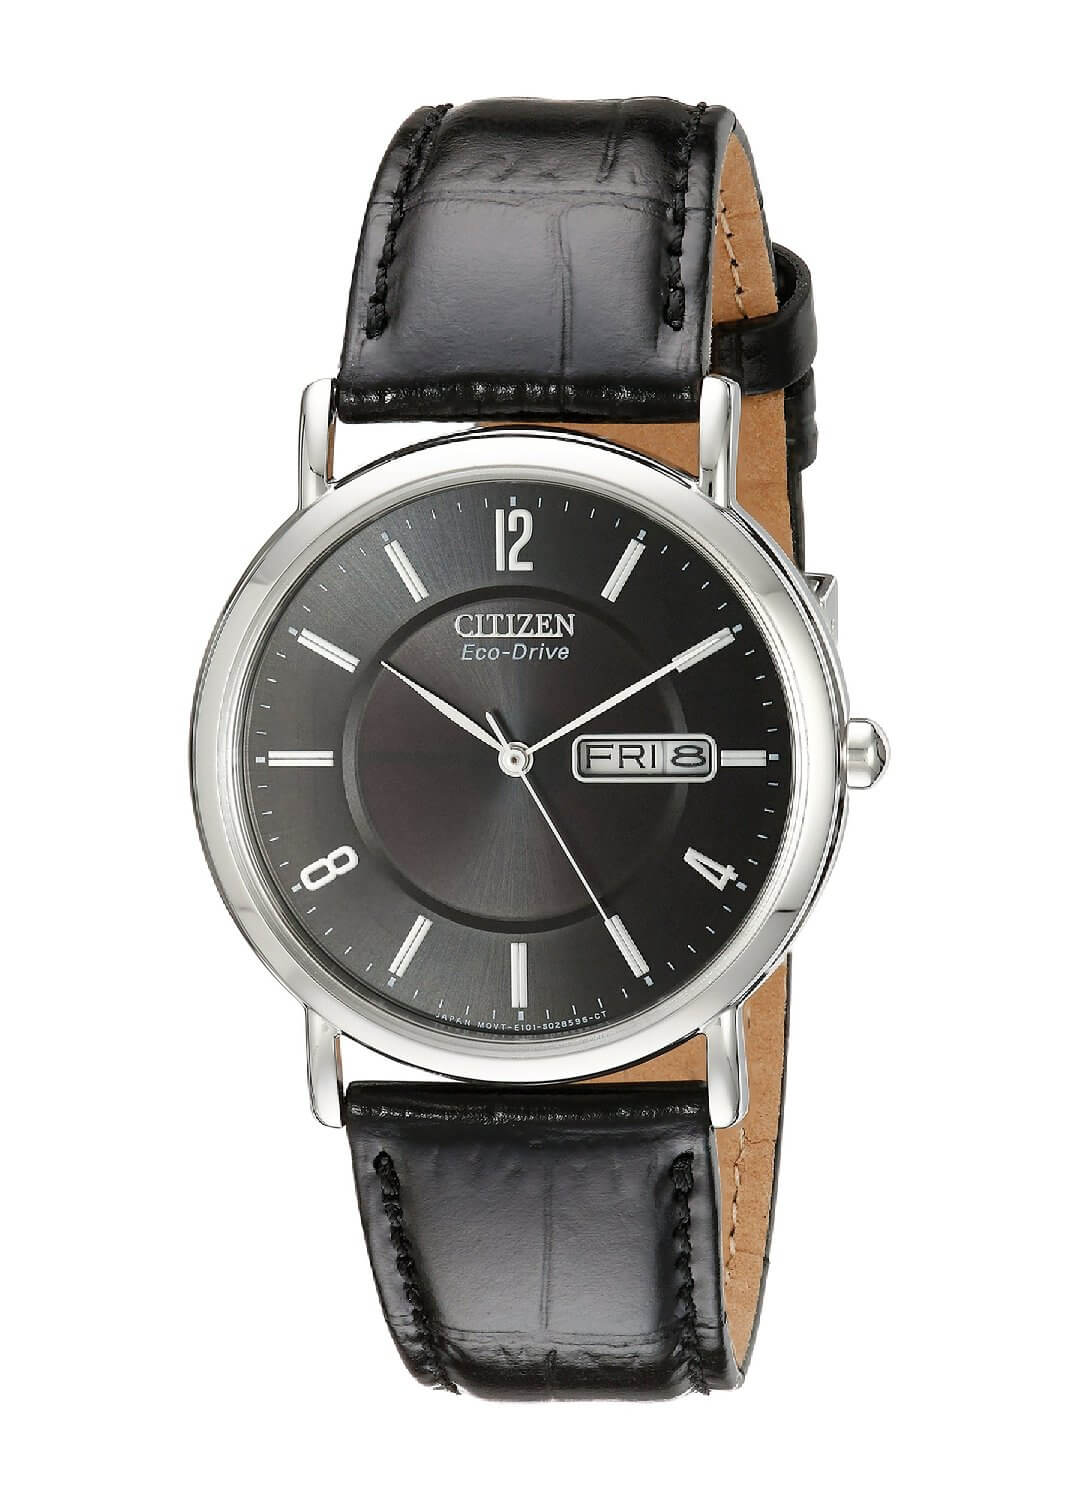 Citizen Eco-Drive Stainless Steel with Leather Band BM8240-03E